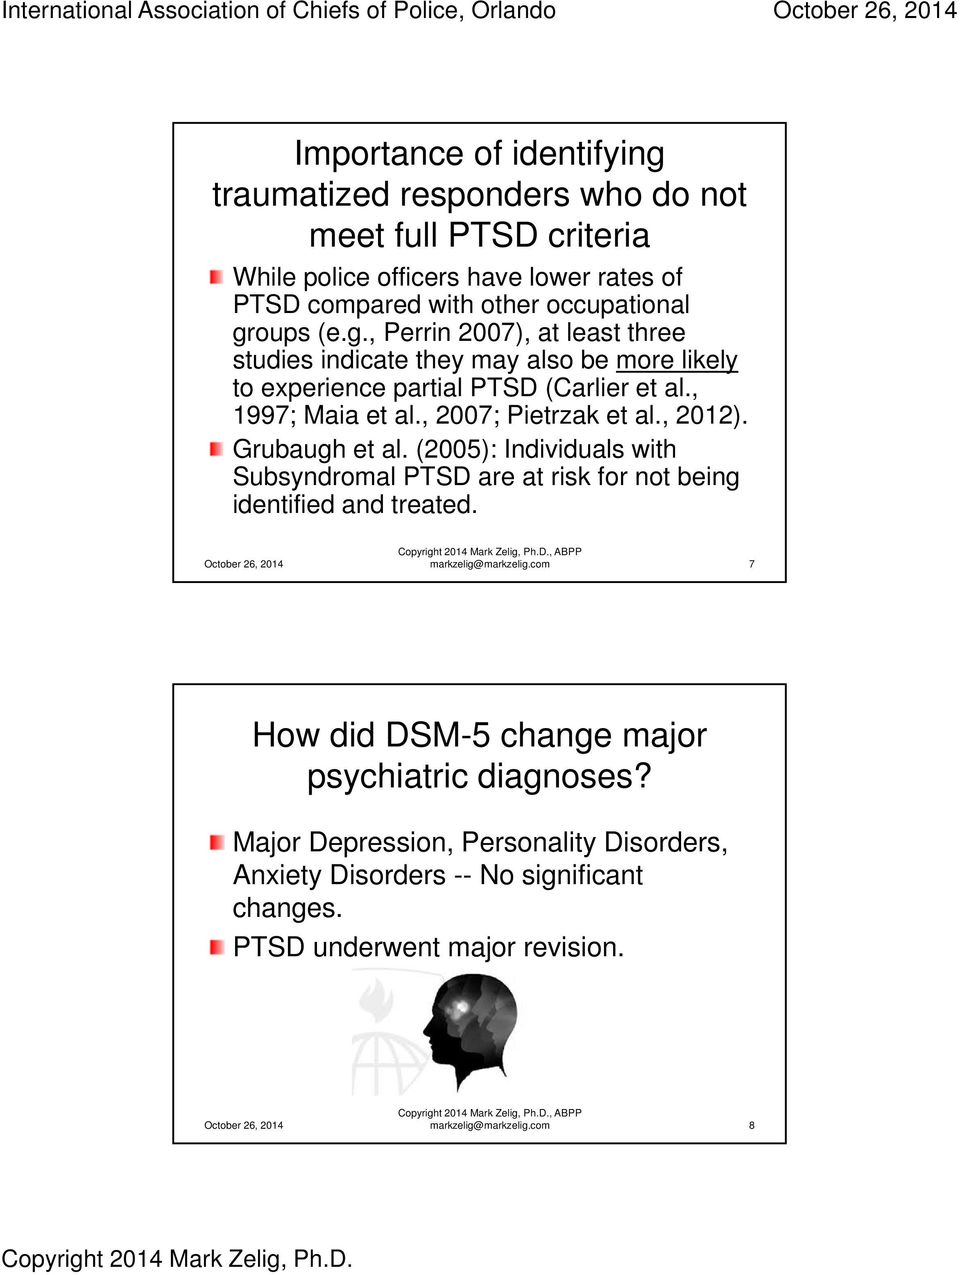 , 1997; Maia et al., 2007; Pietrzak et al., 2012). Grubaugh et al. (2005): Individuals with Subsyndromal PTSD are at risk for not being identified and treated. markzelig@markzelig.